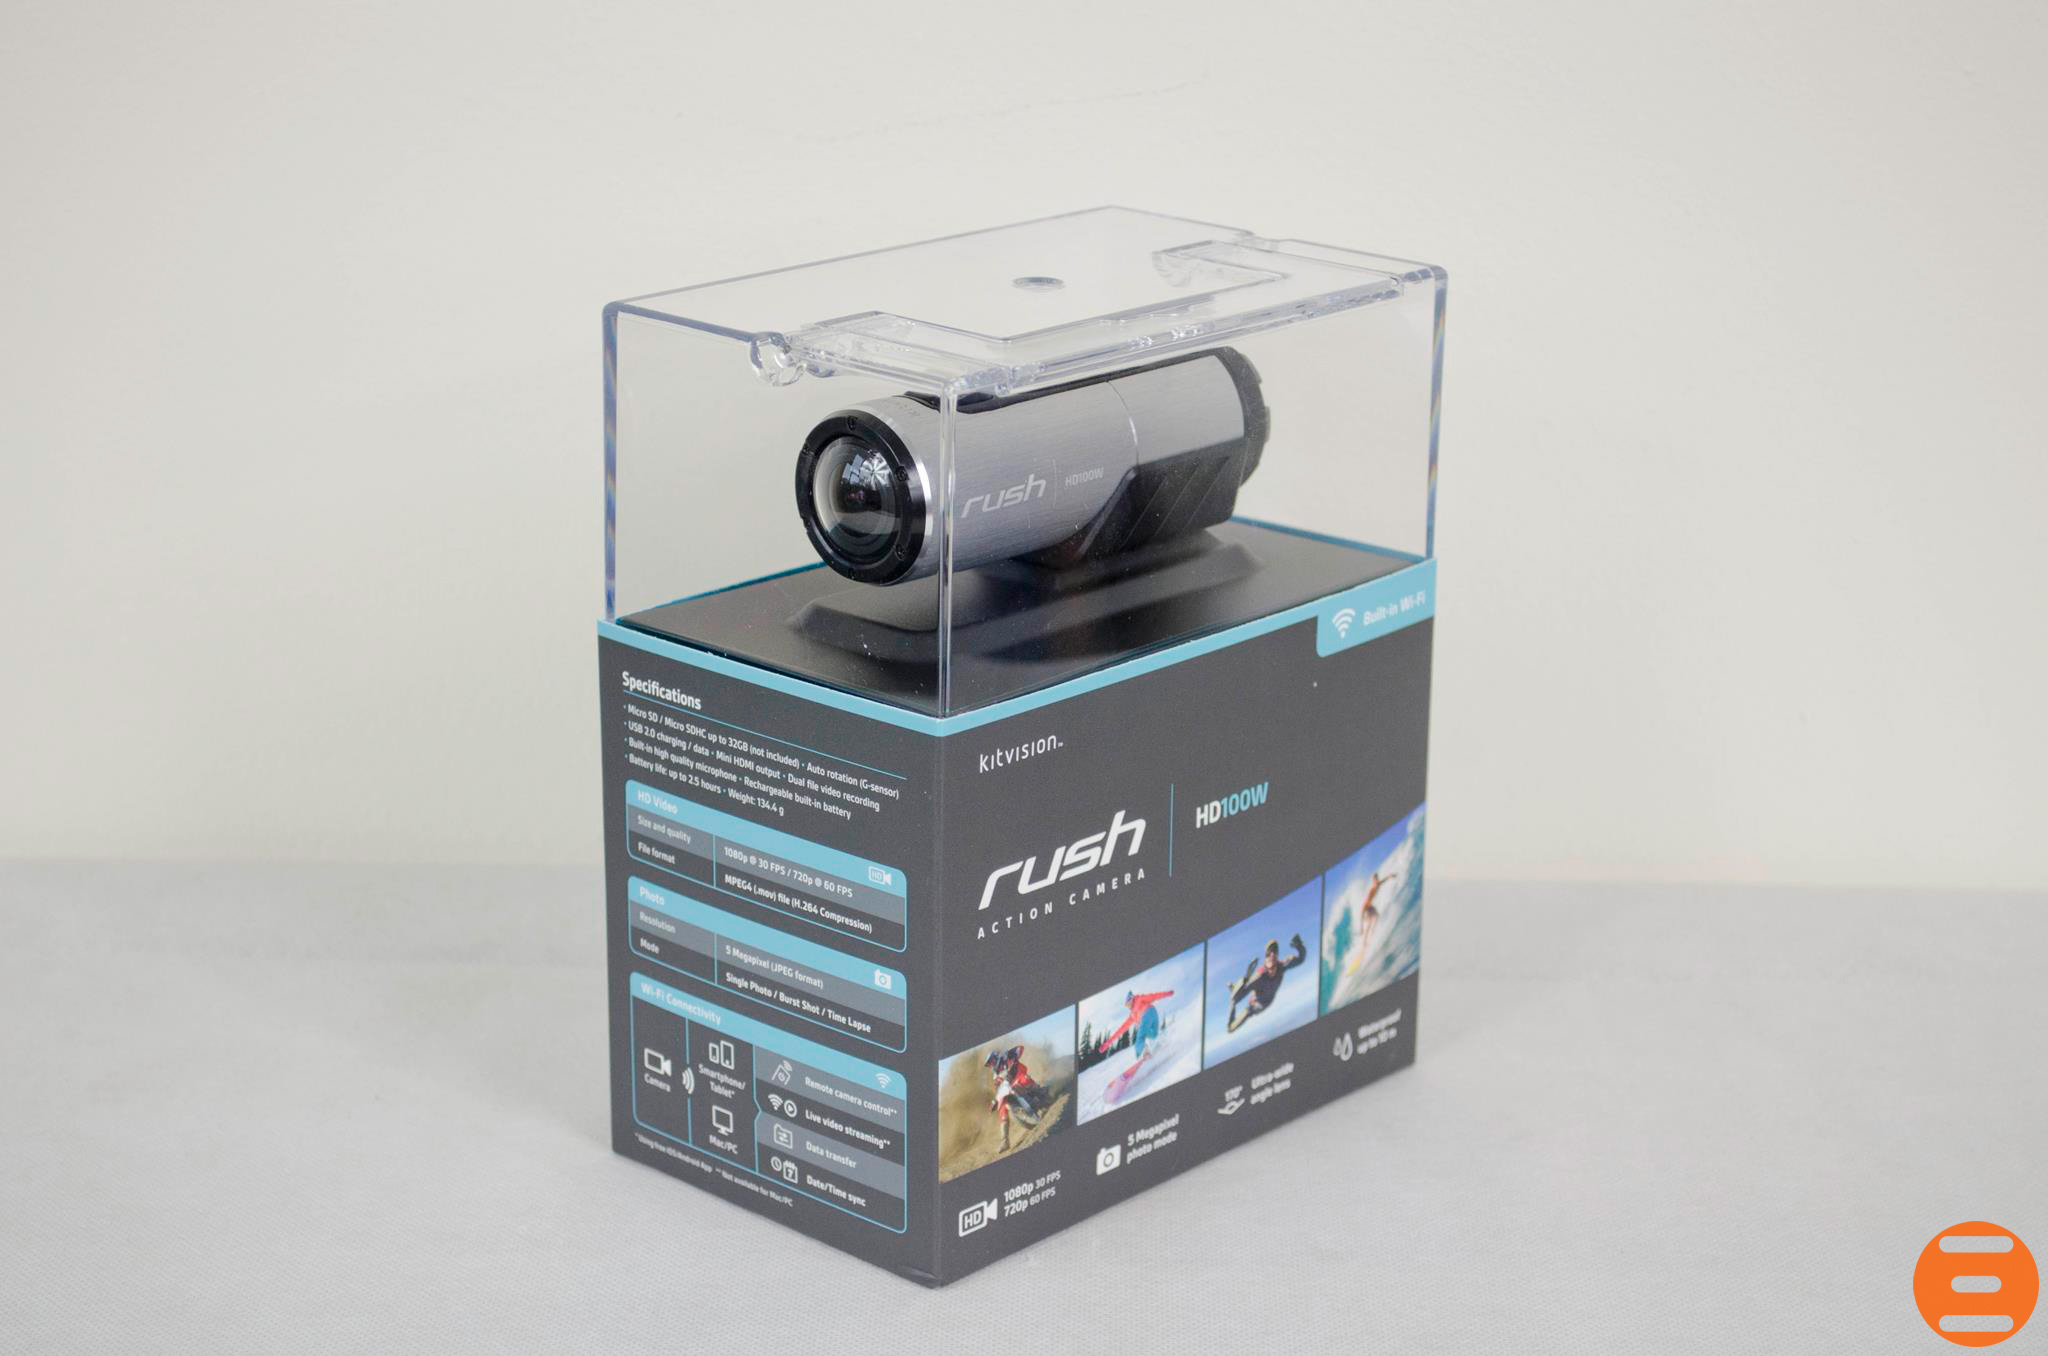 Kitvision-Rush-HD100W-Action-Cam